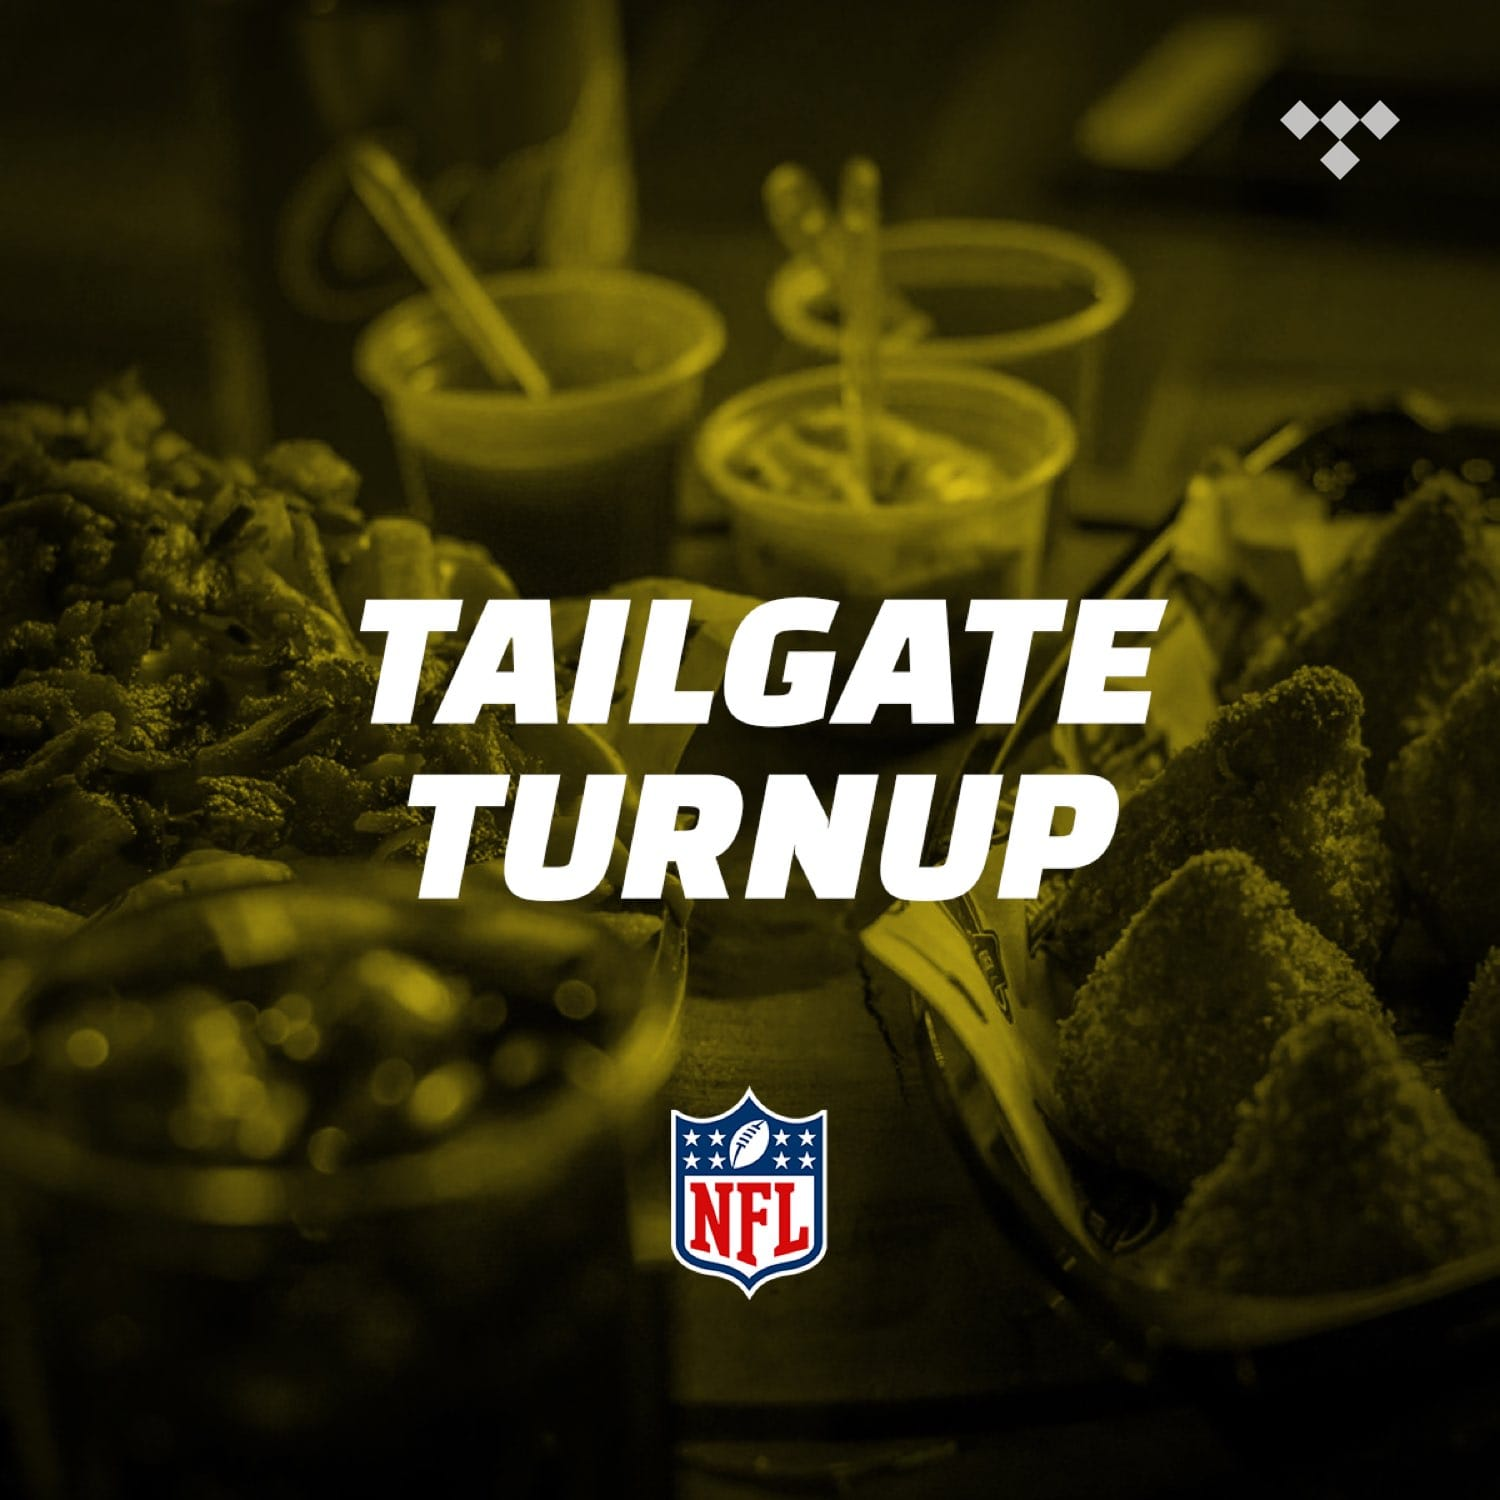 Tailgate Turnup